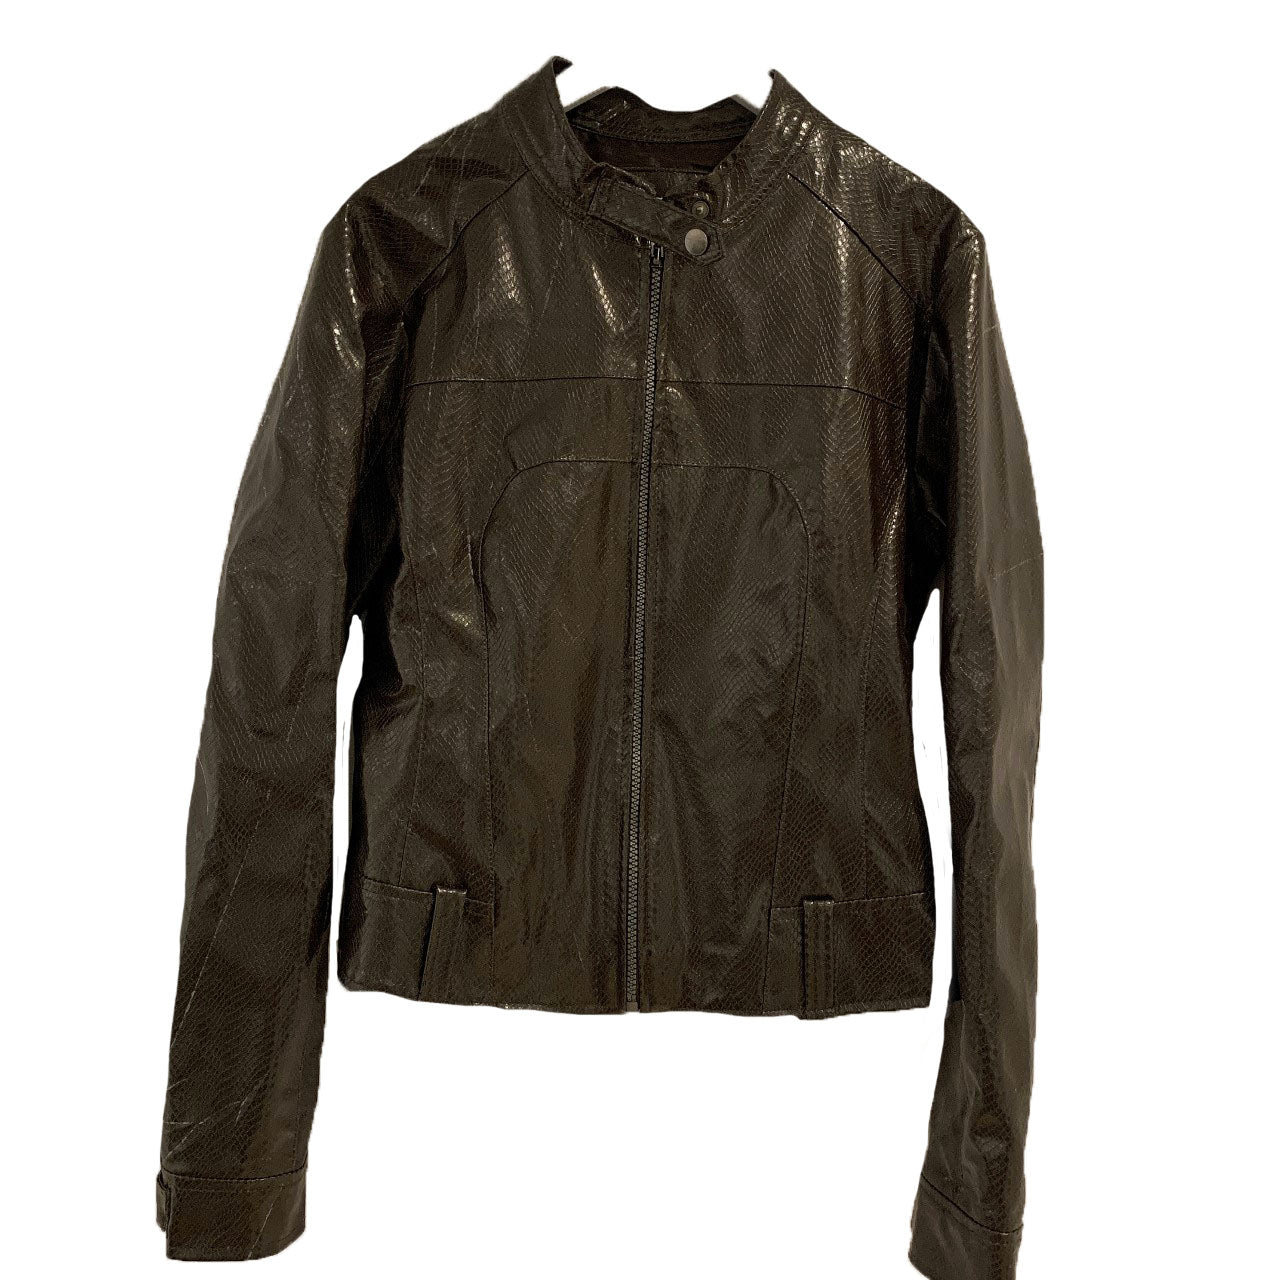 Y2K Choco brown motto pleather